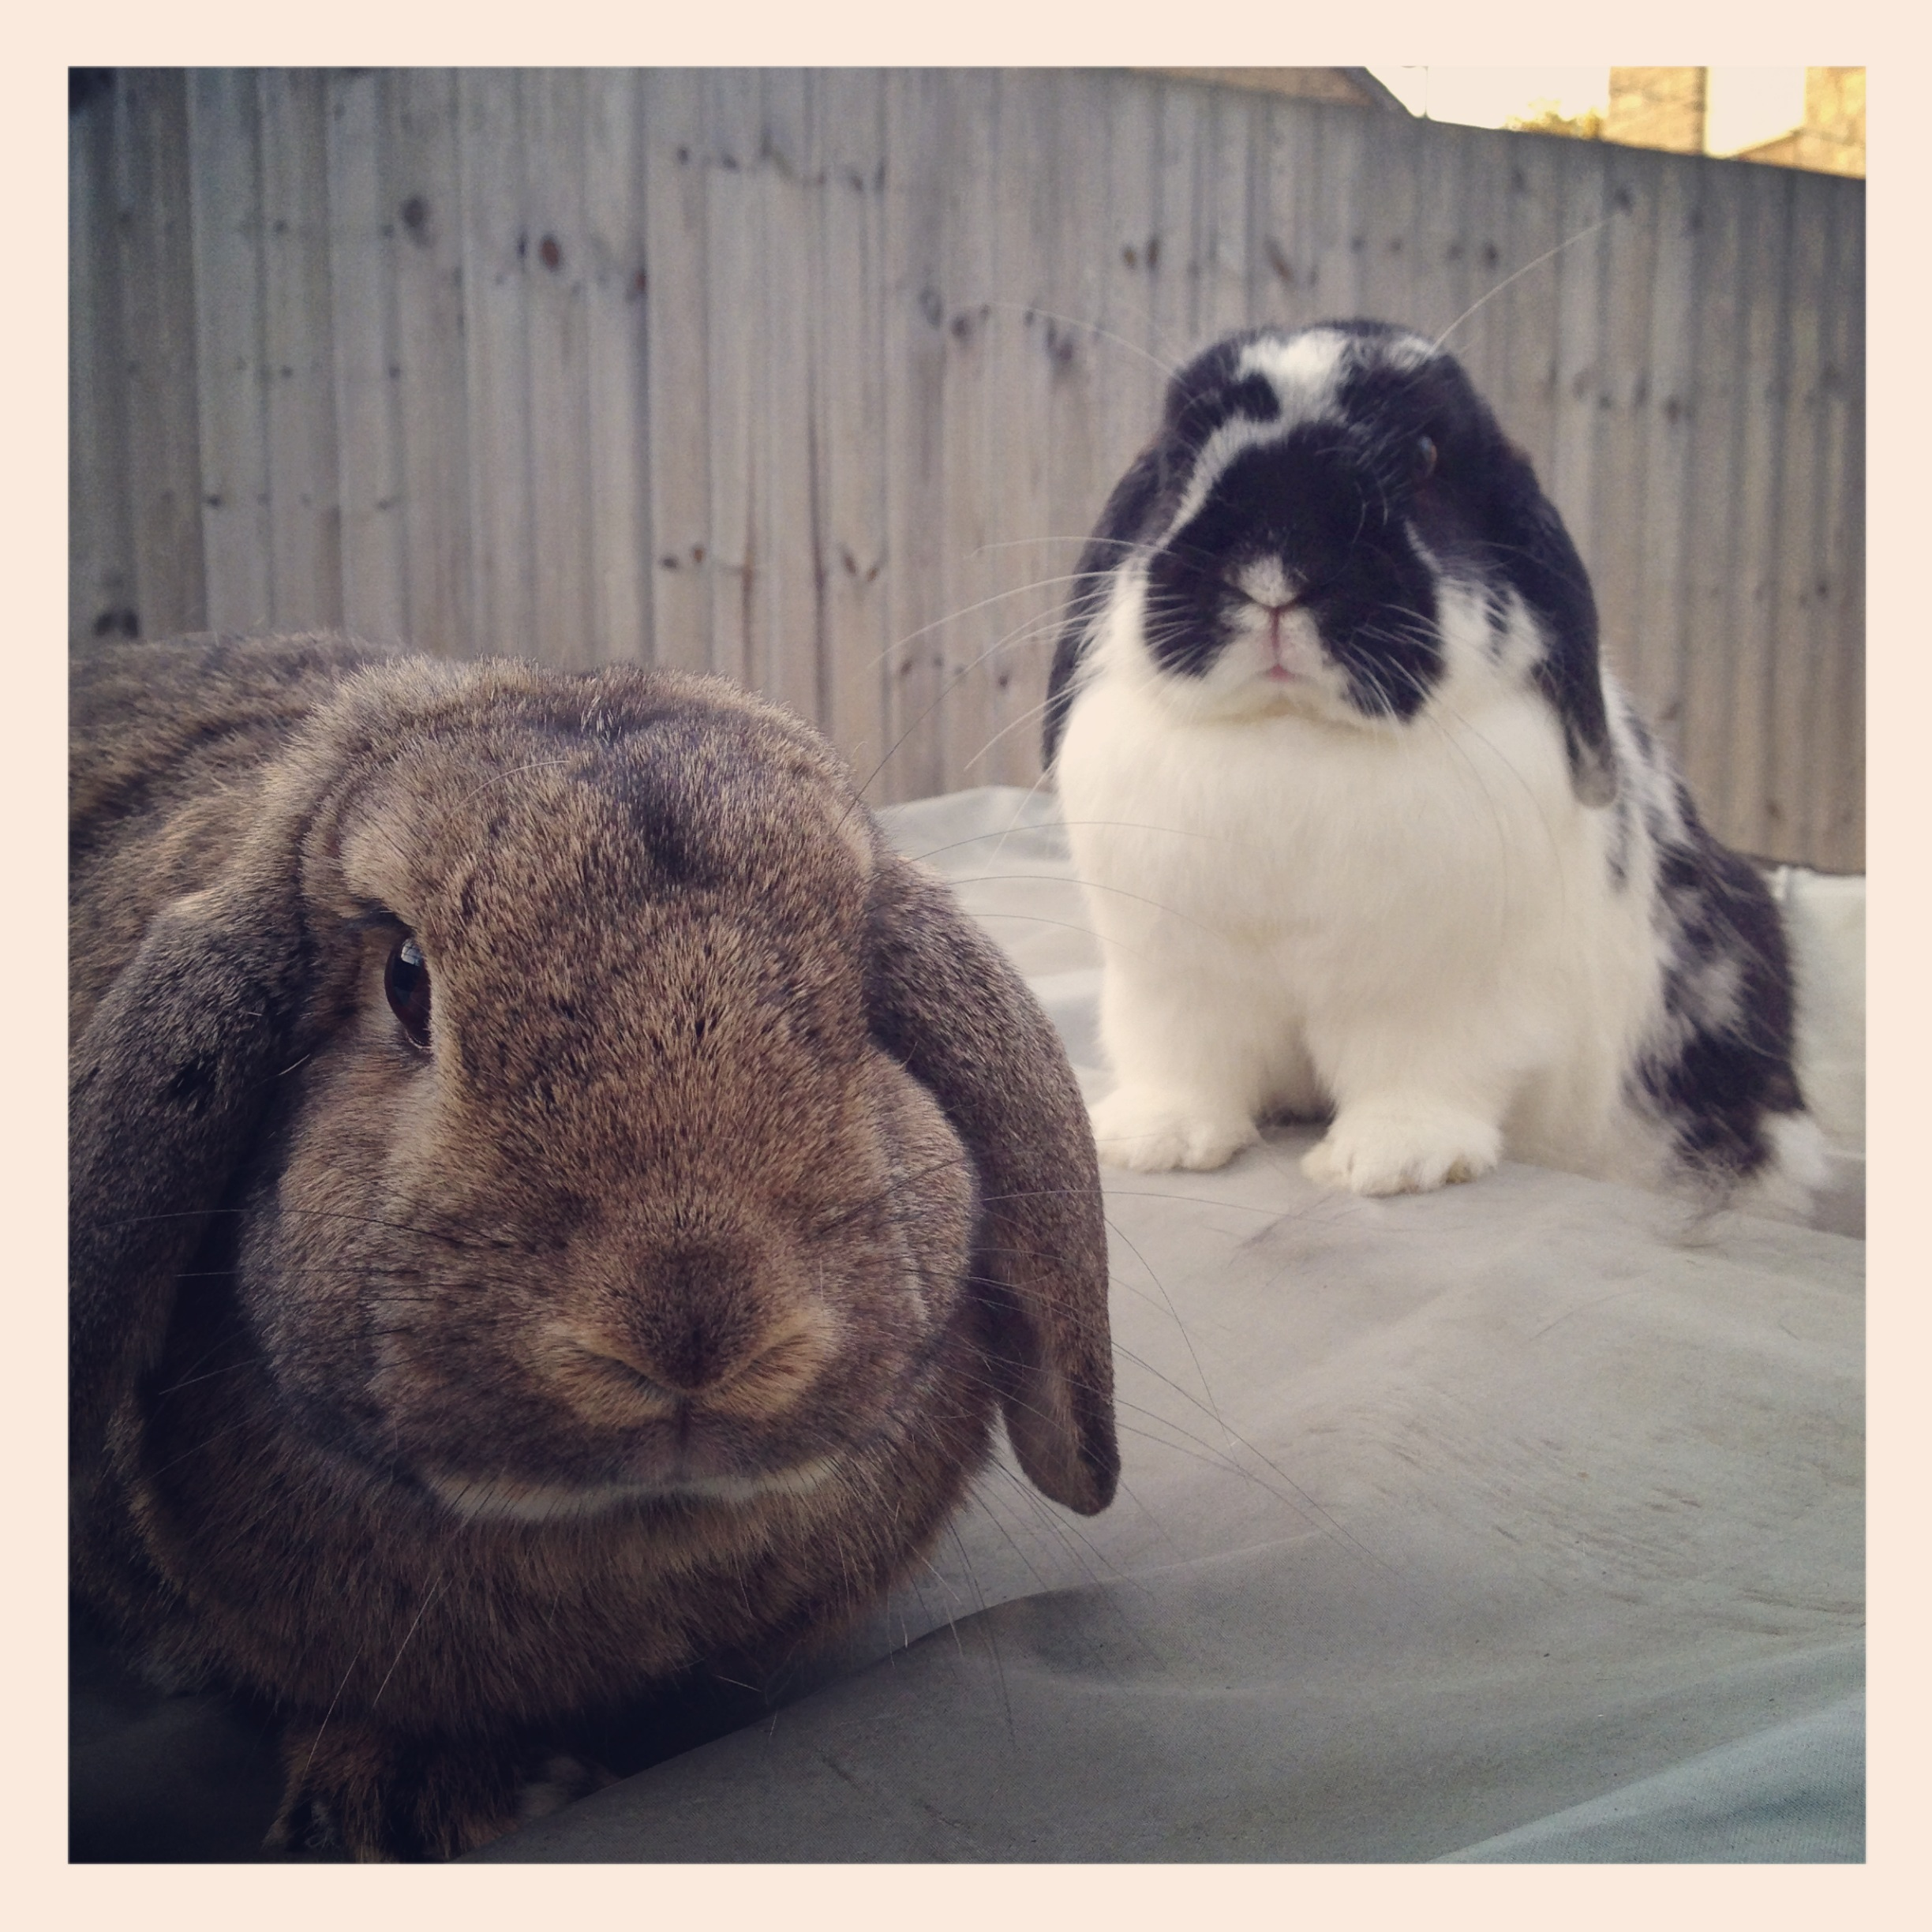 Looks Like You're in the Wrong Neighborhood, Human. Now Give Us All Your Carrots!